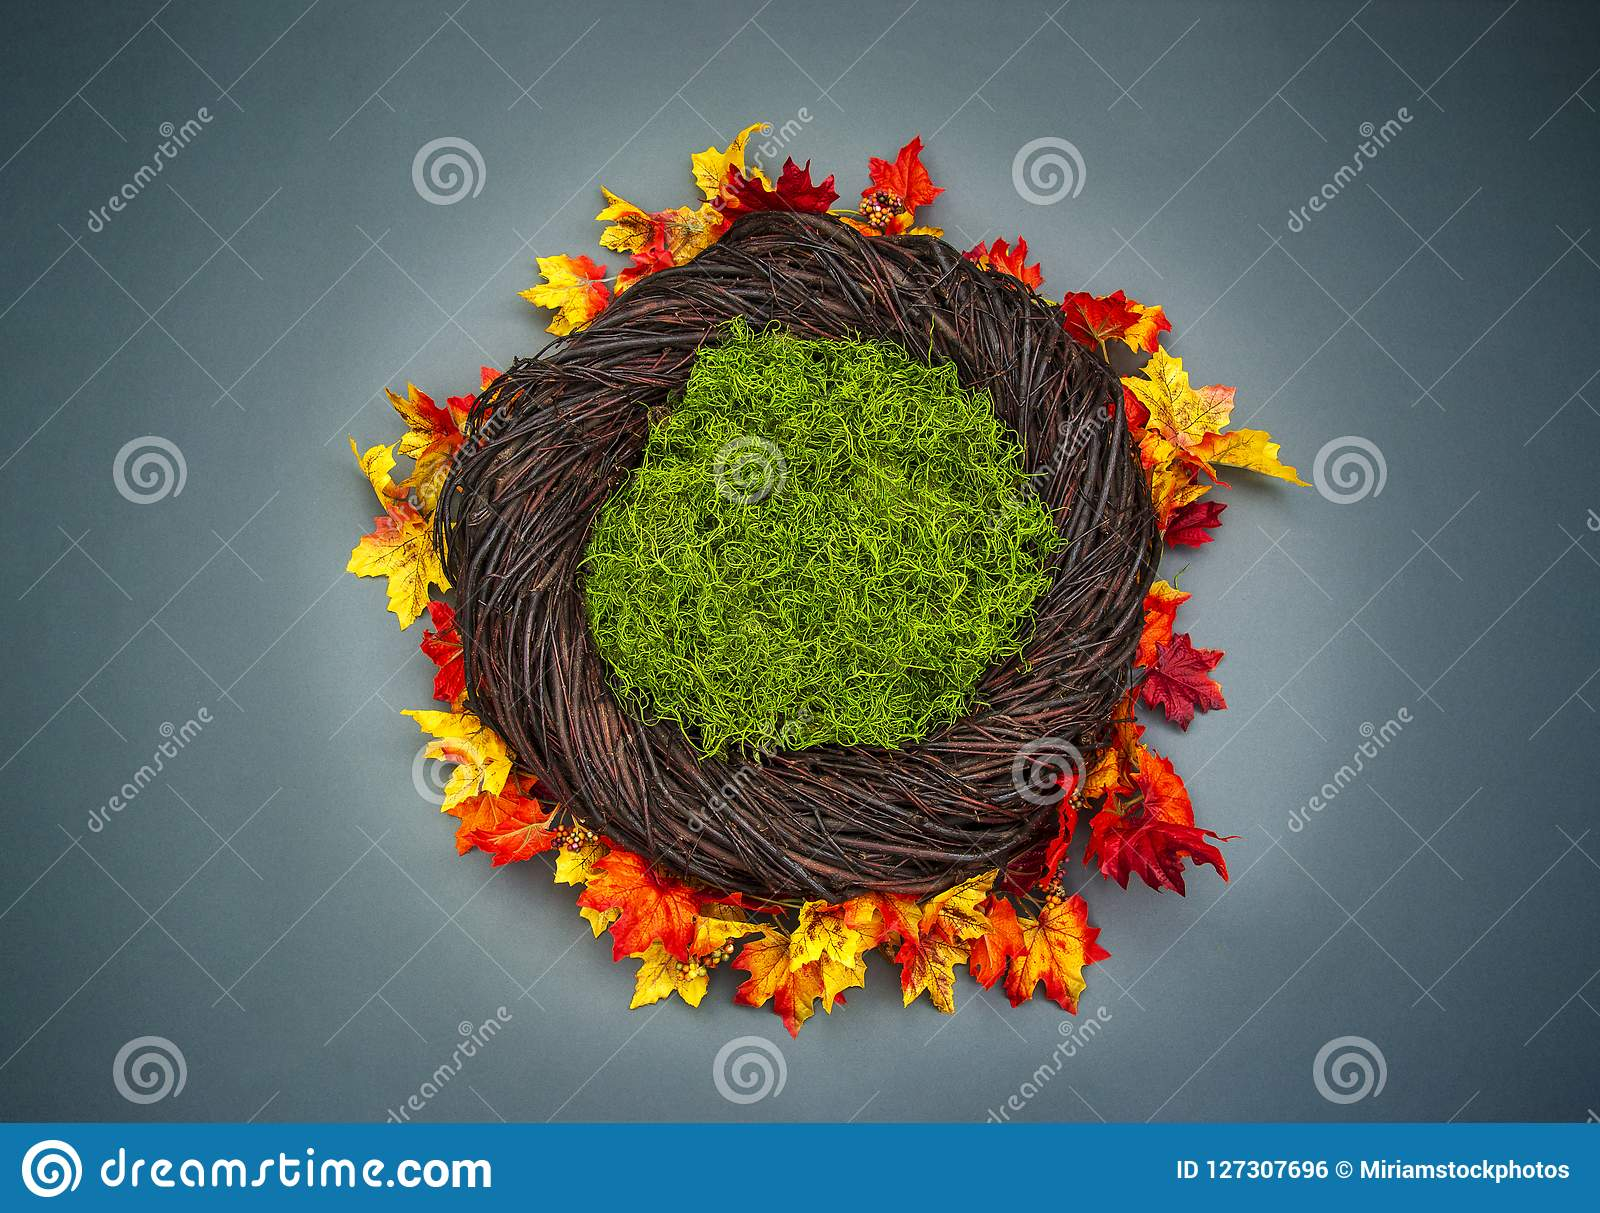 Infant Nest Fantasy Background Photo Prop With Colorful Fall Lea